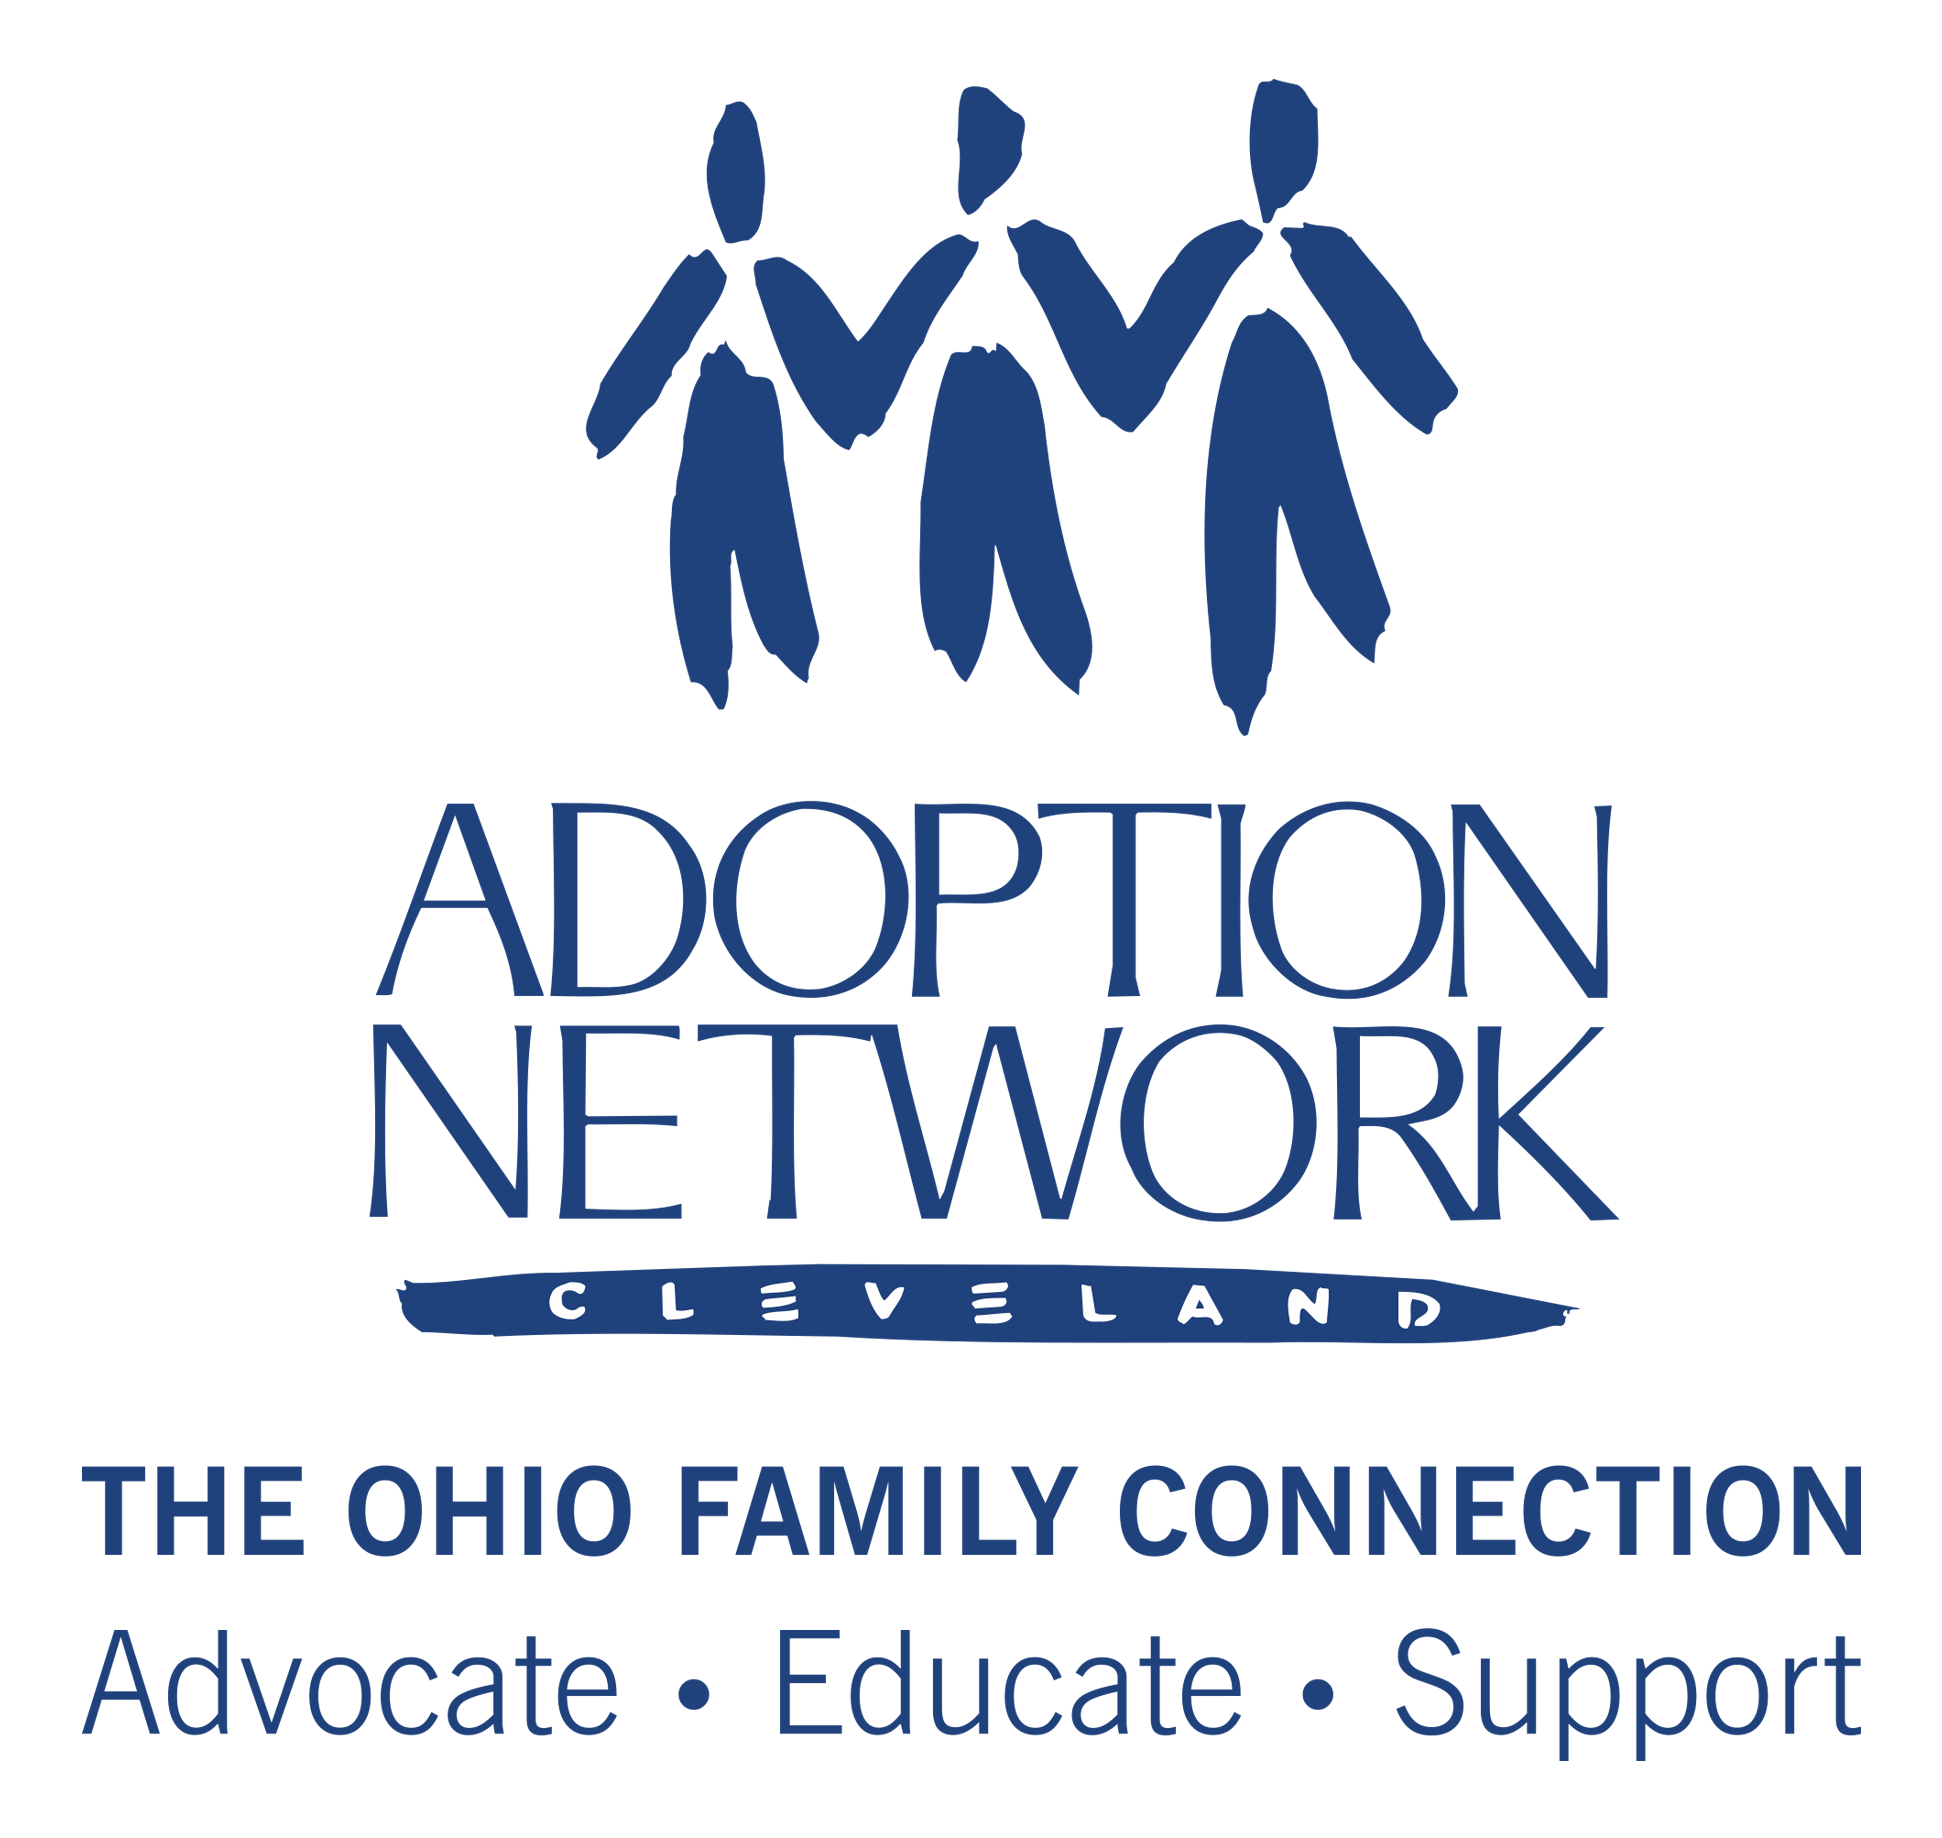 Adoption Network Cleveland standing firmly against racism and hate